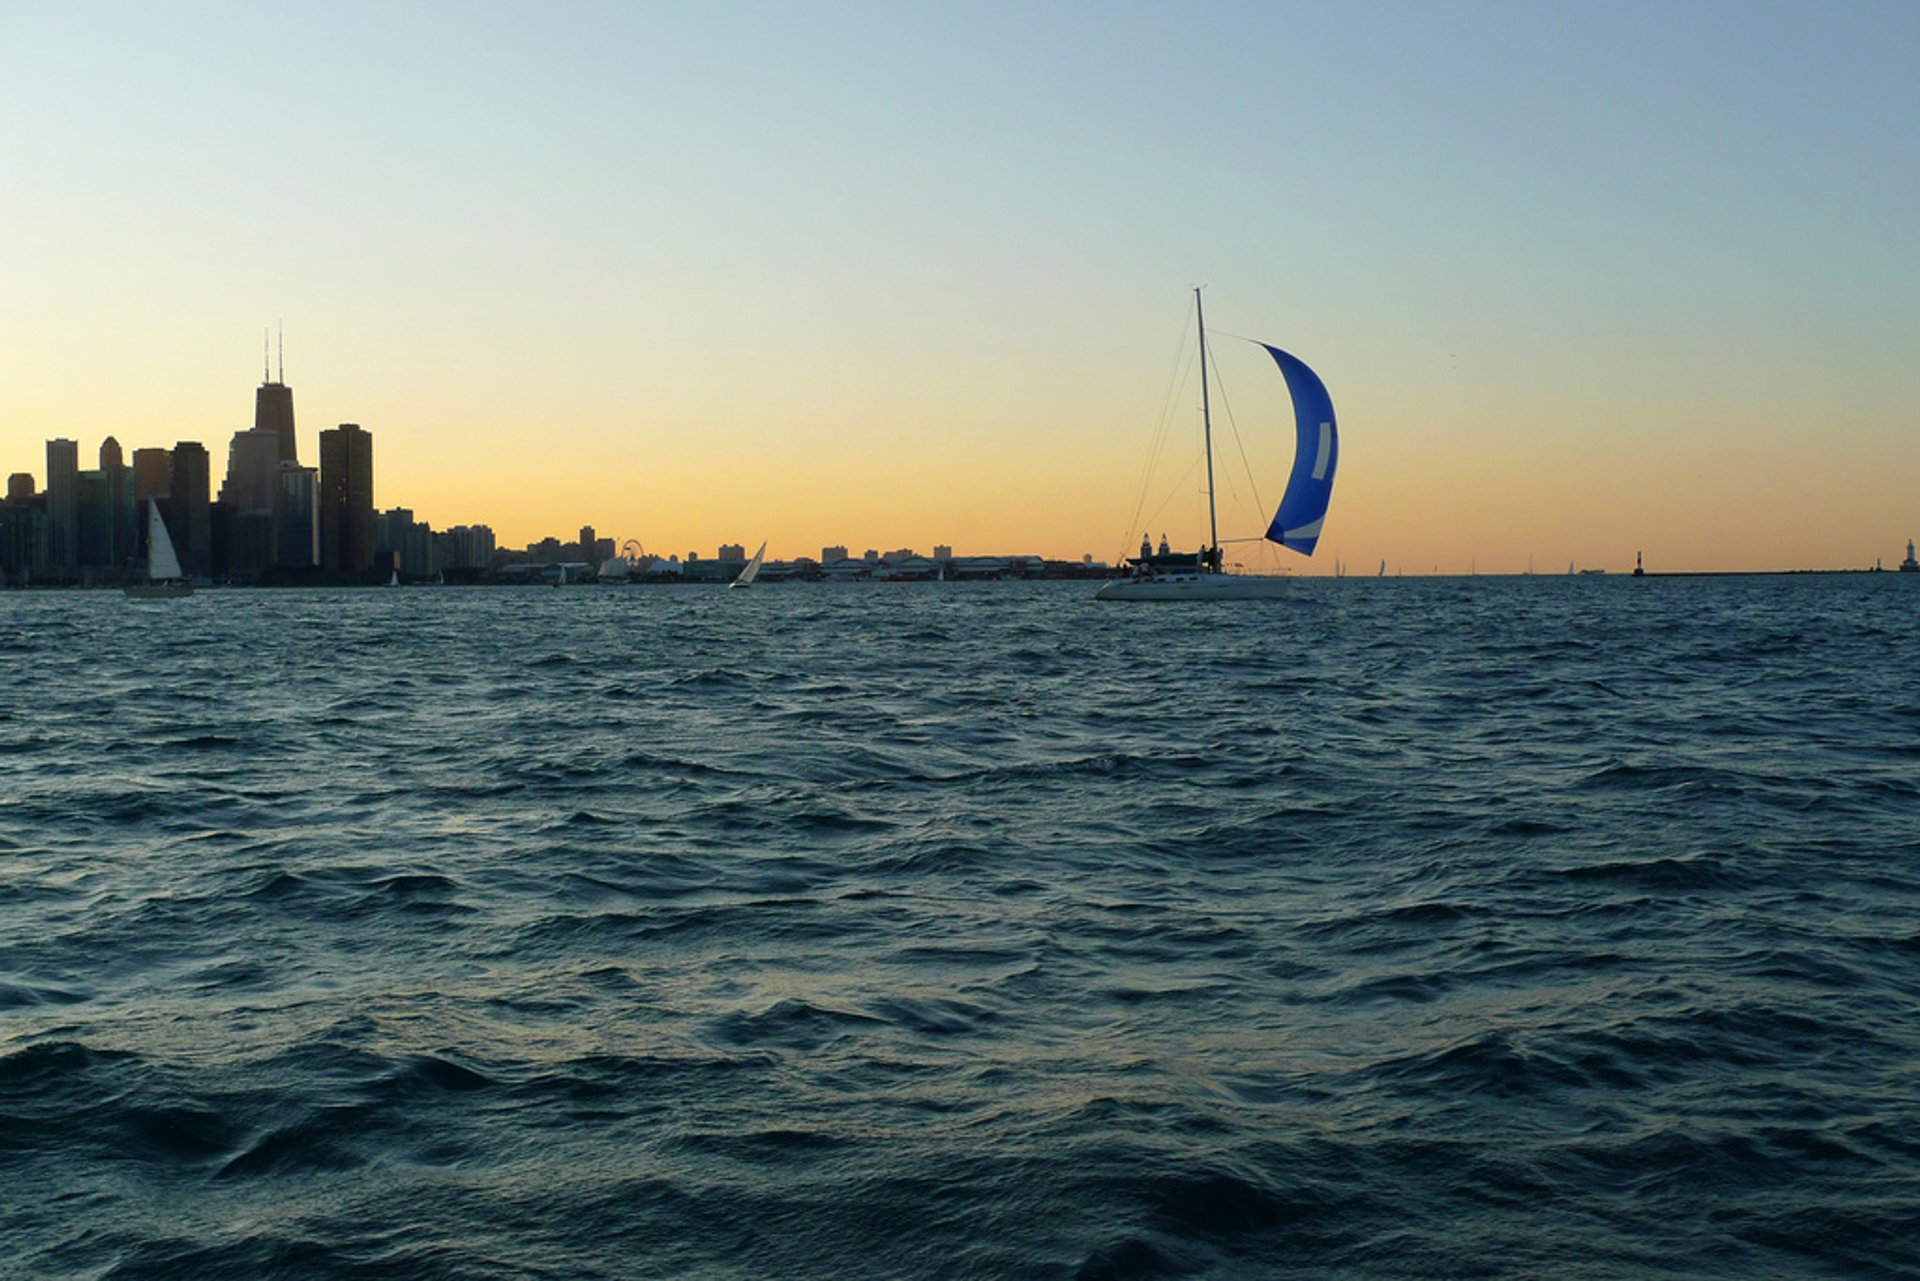 Sailing Season in Chicago 2020 - Best Time